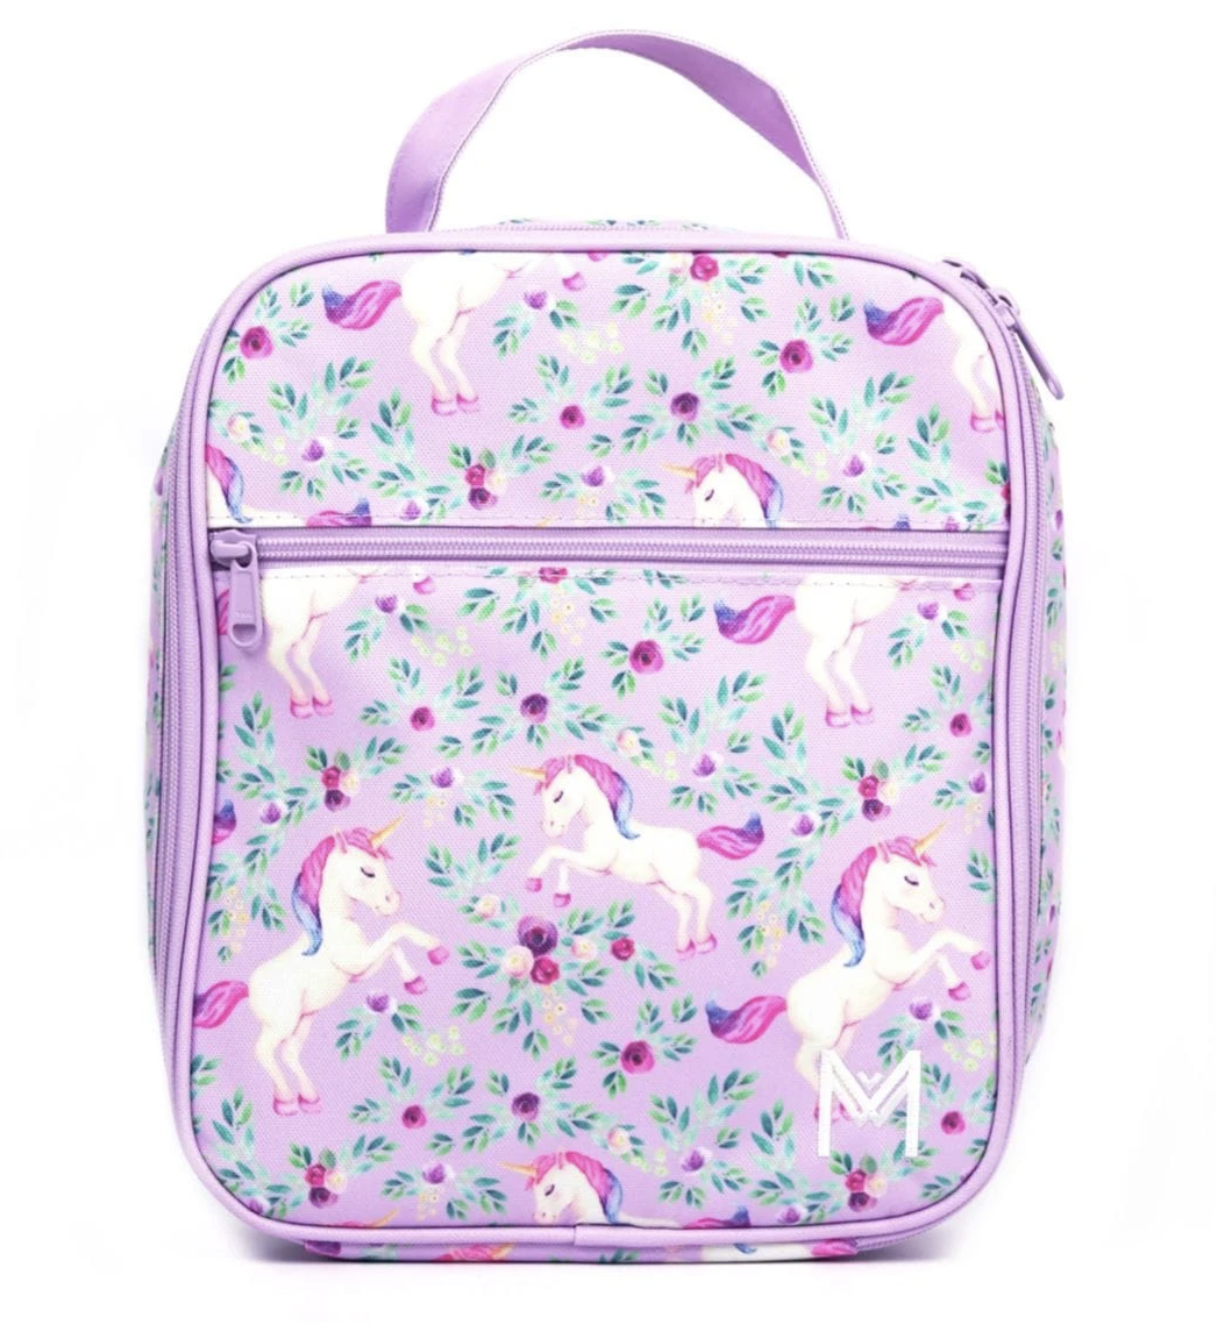 Montii insulated Lunch Bag - Unicorn-1